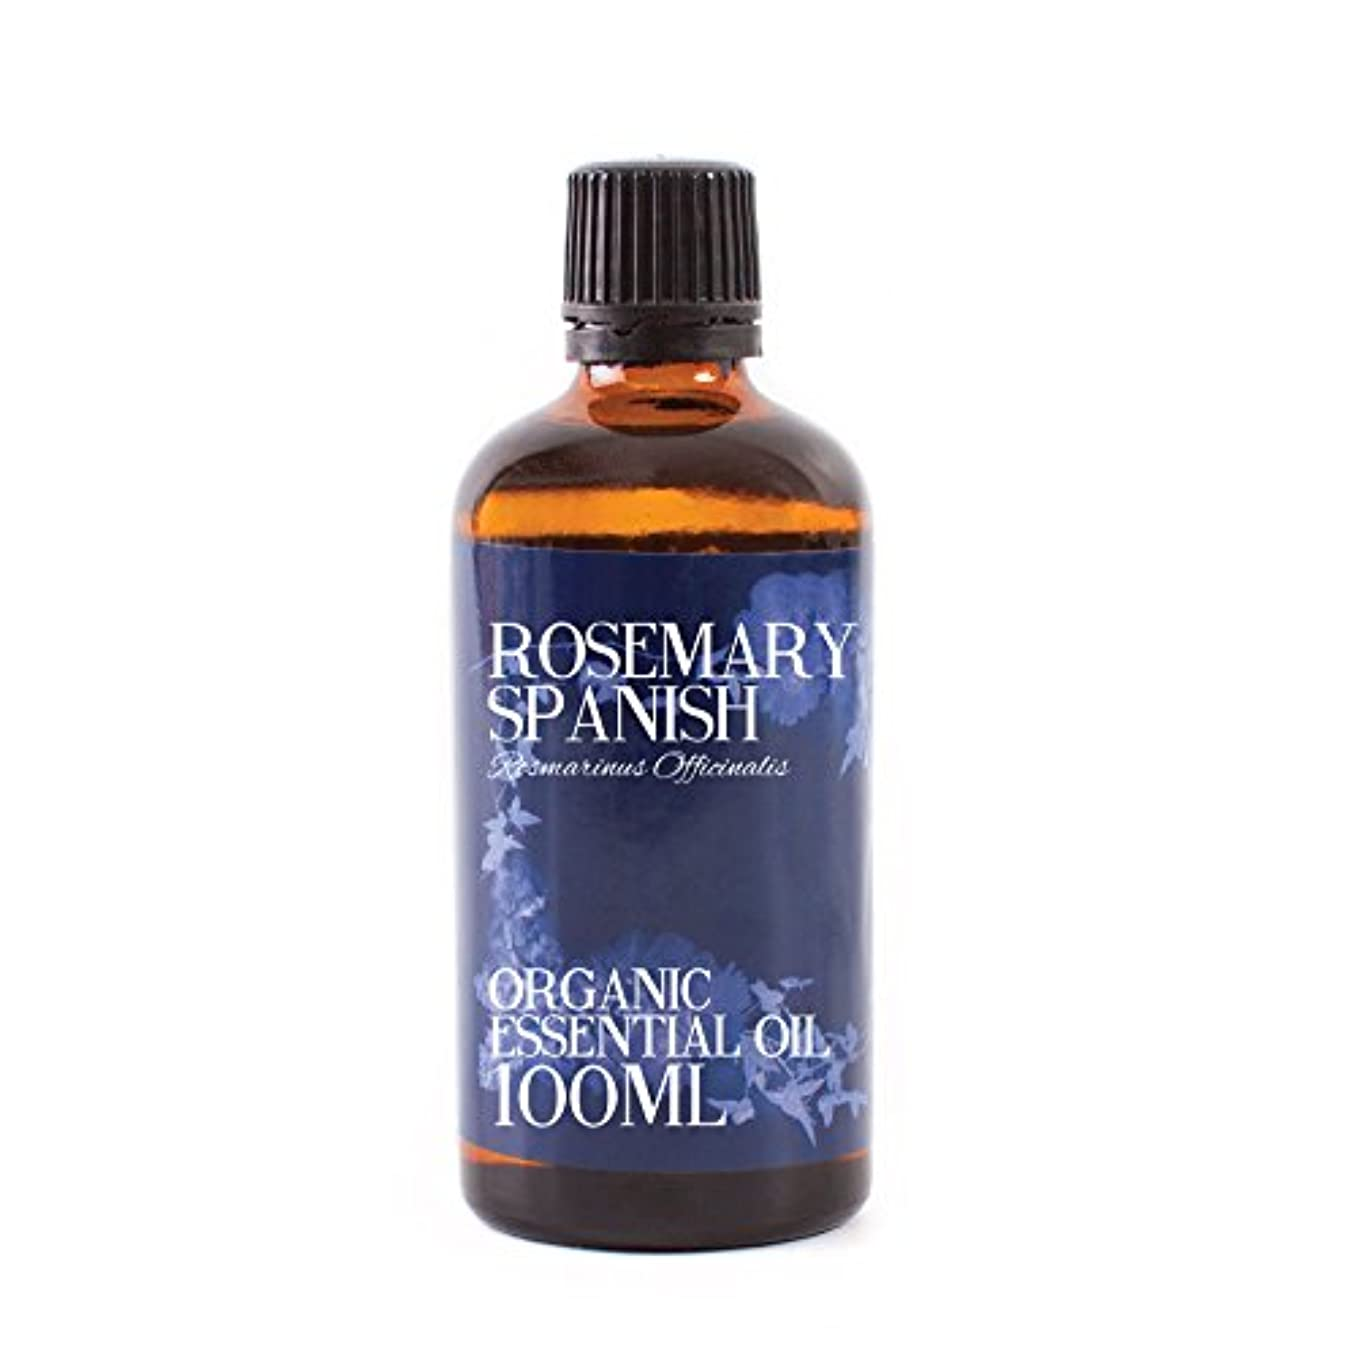 Mystic Moments | Rosemary Spanish Organic Essential Oil - 100ml - 100% Pure